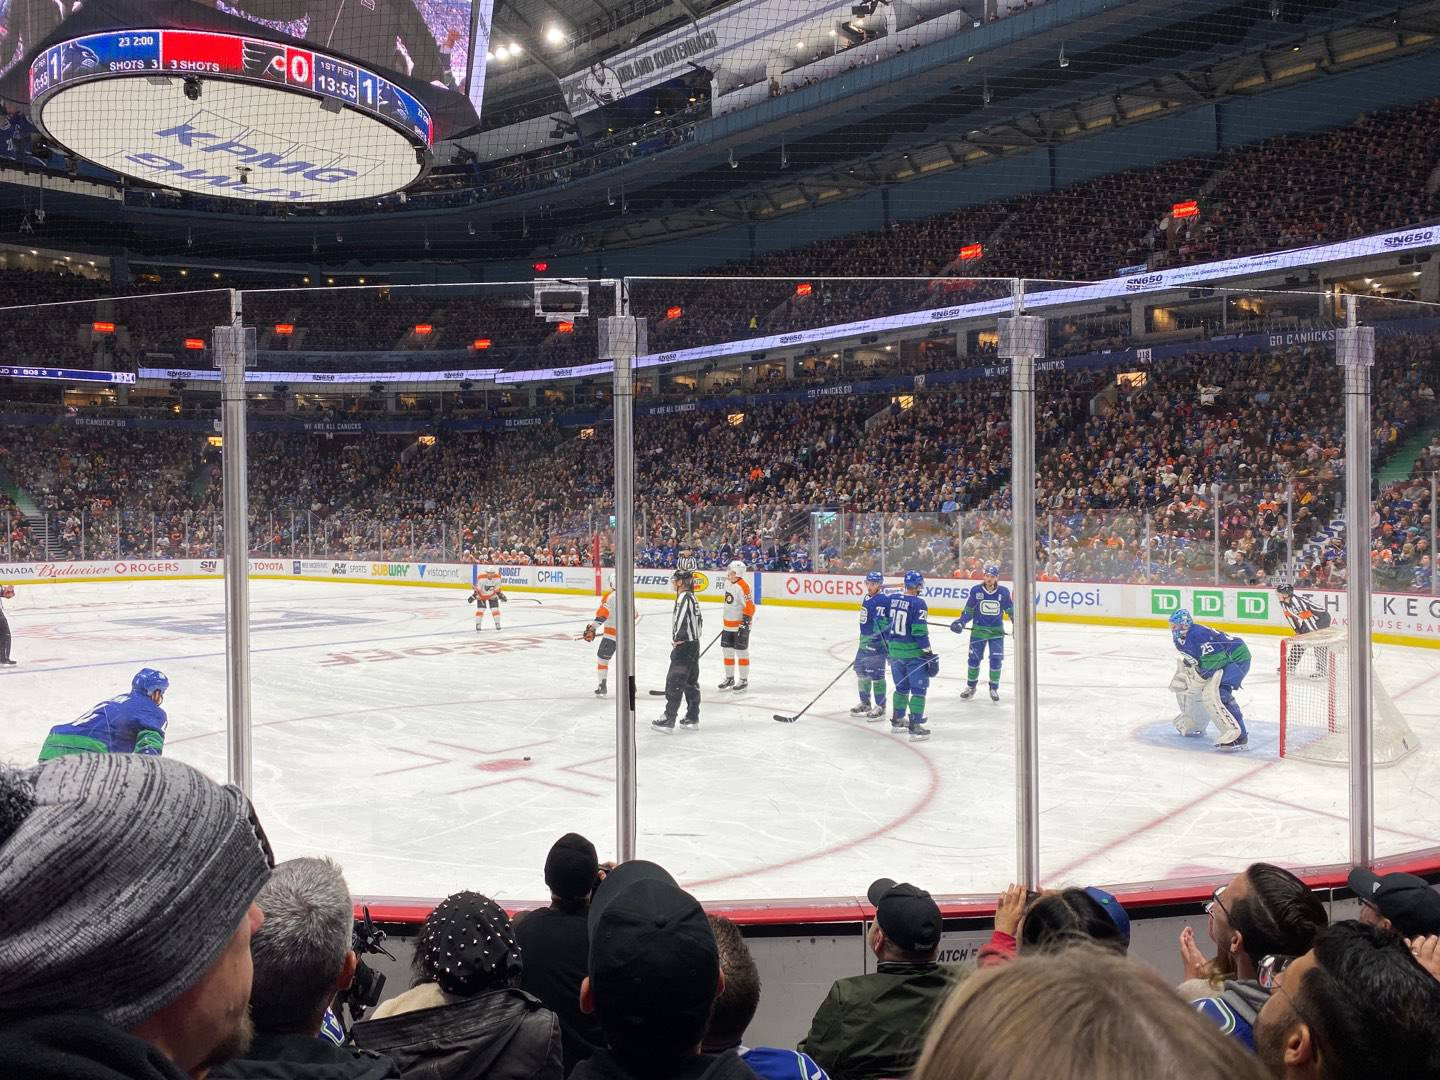 Rogers Arena Section 103 Row 5 Seat 5